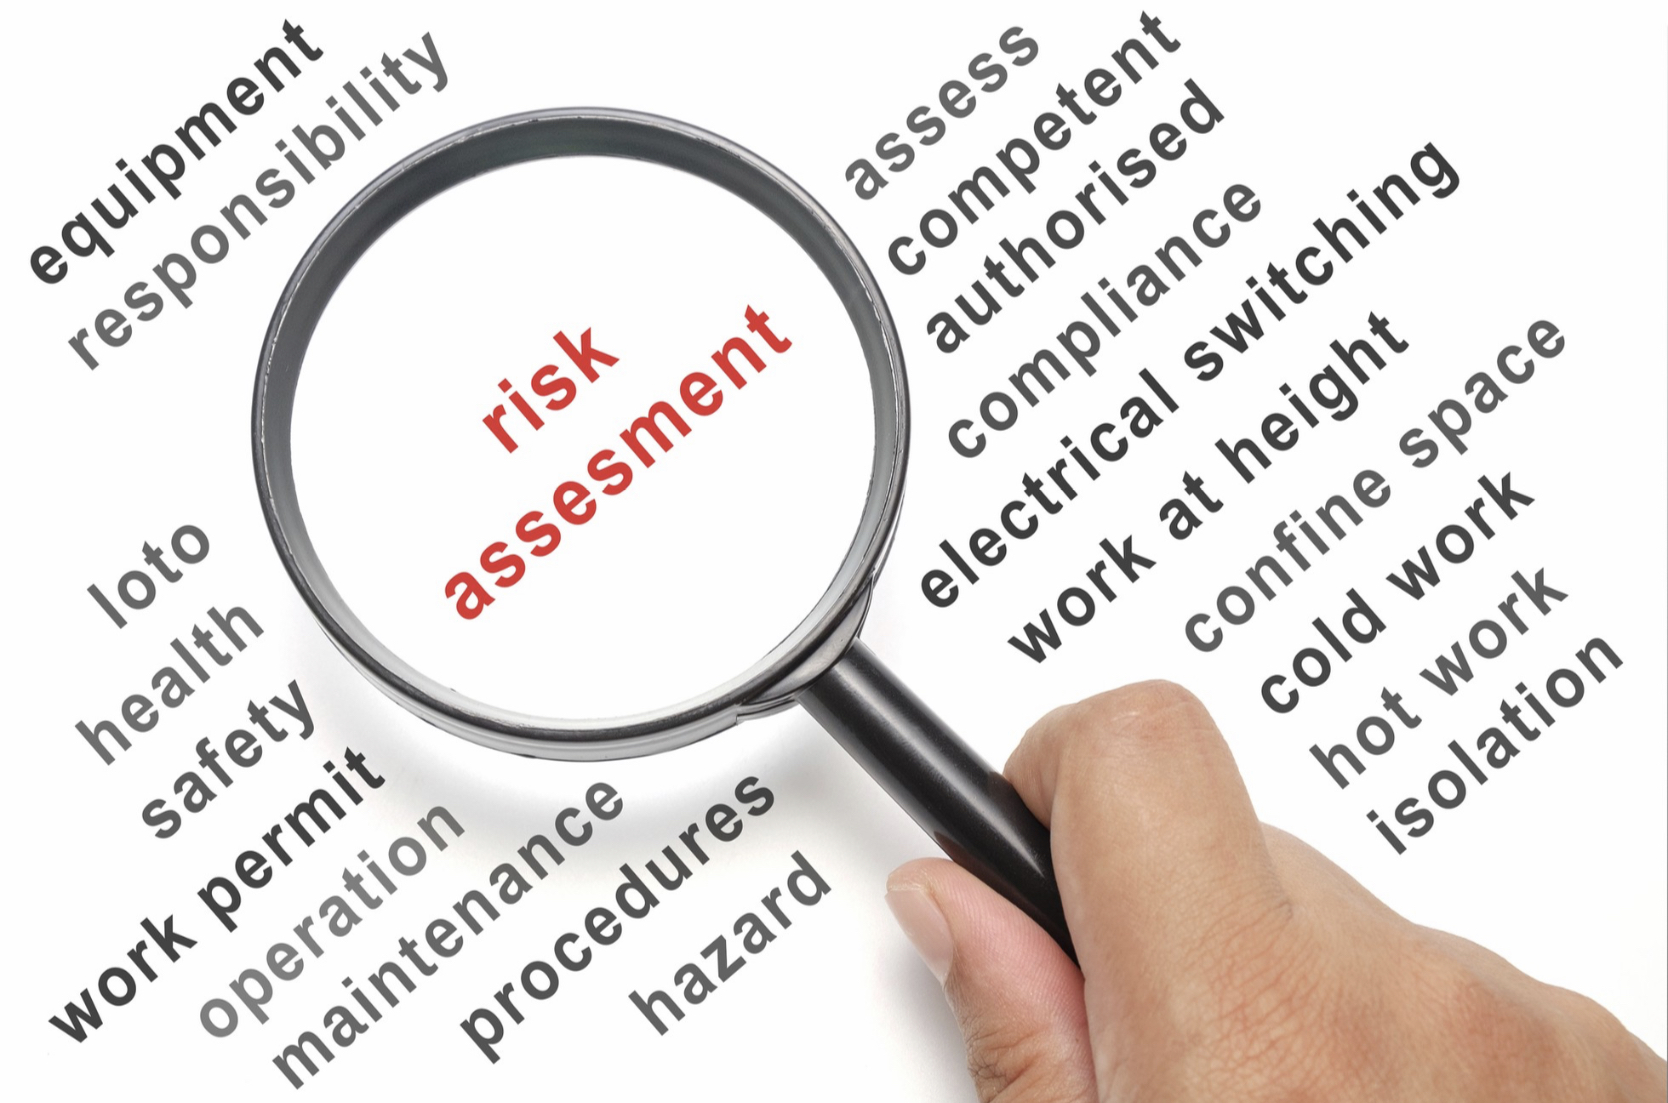 Introduction to risk assessments